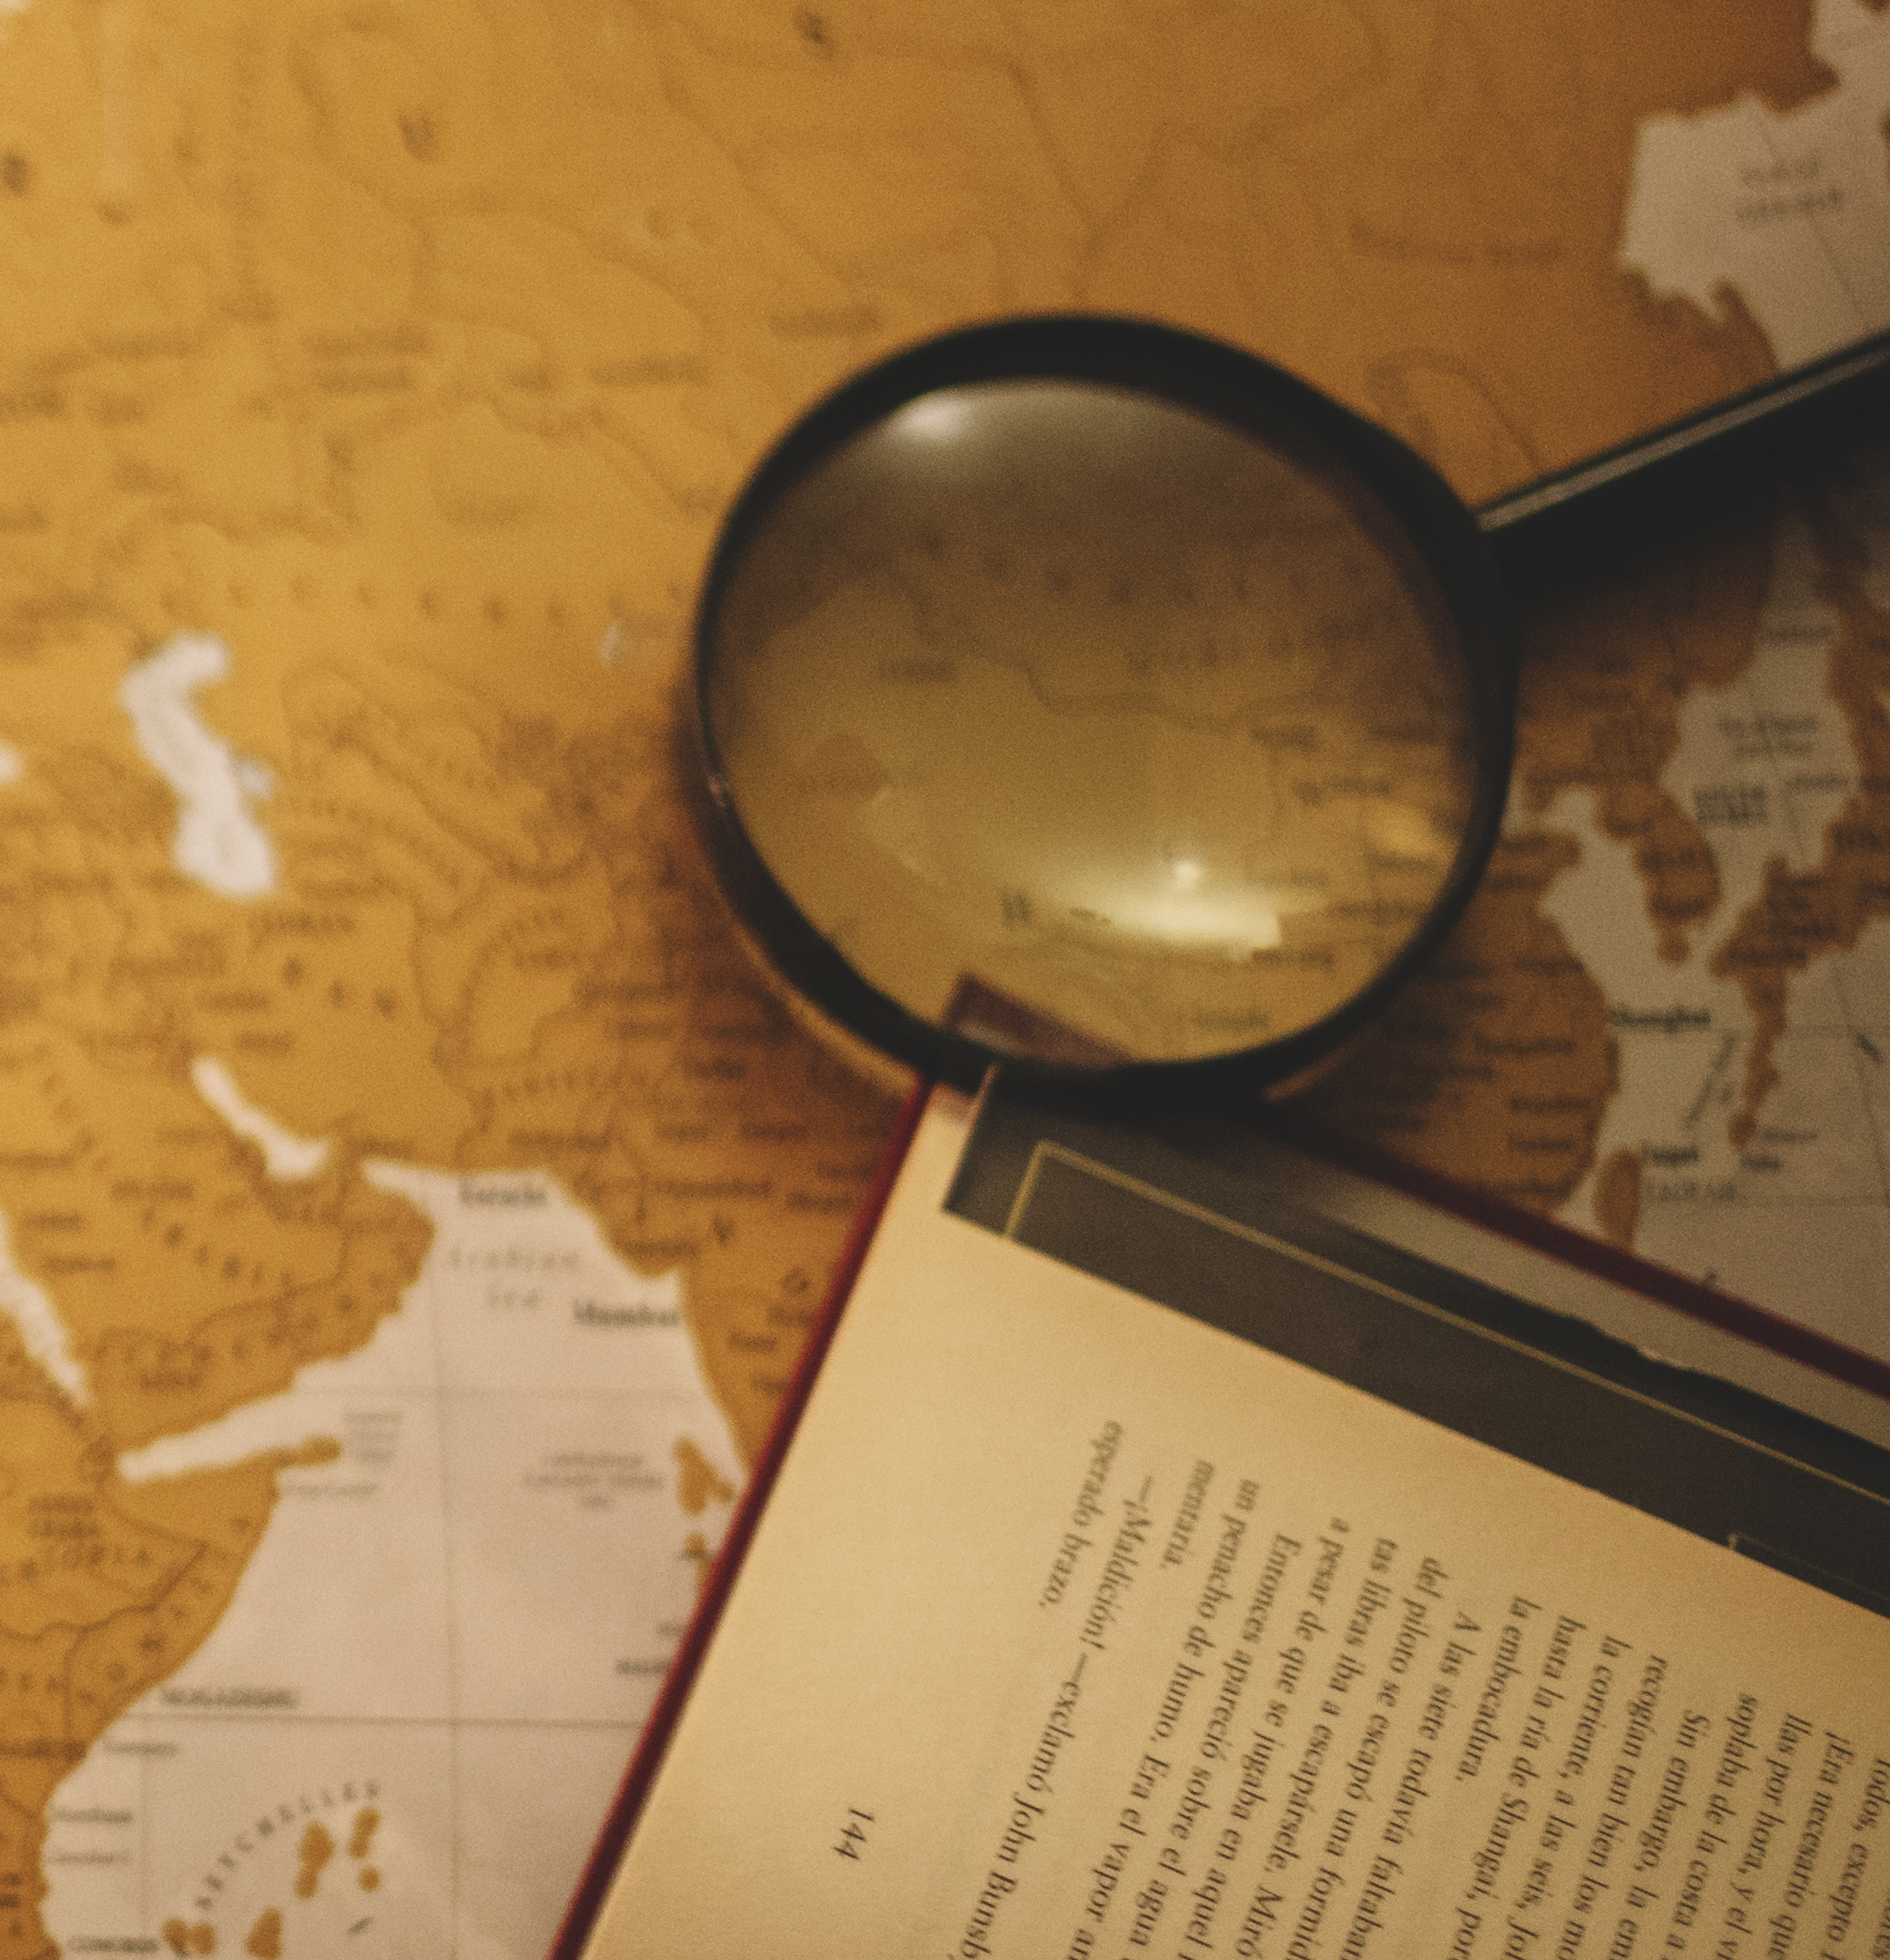 Magnifying glass and book on map